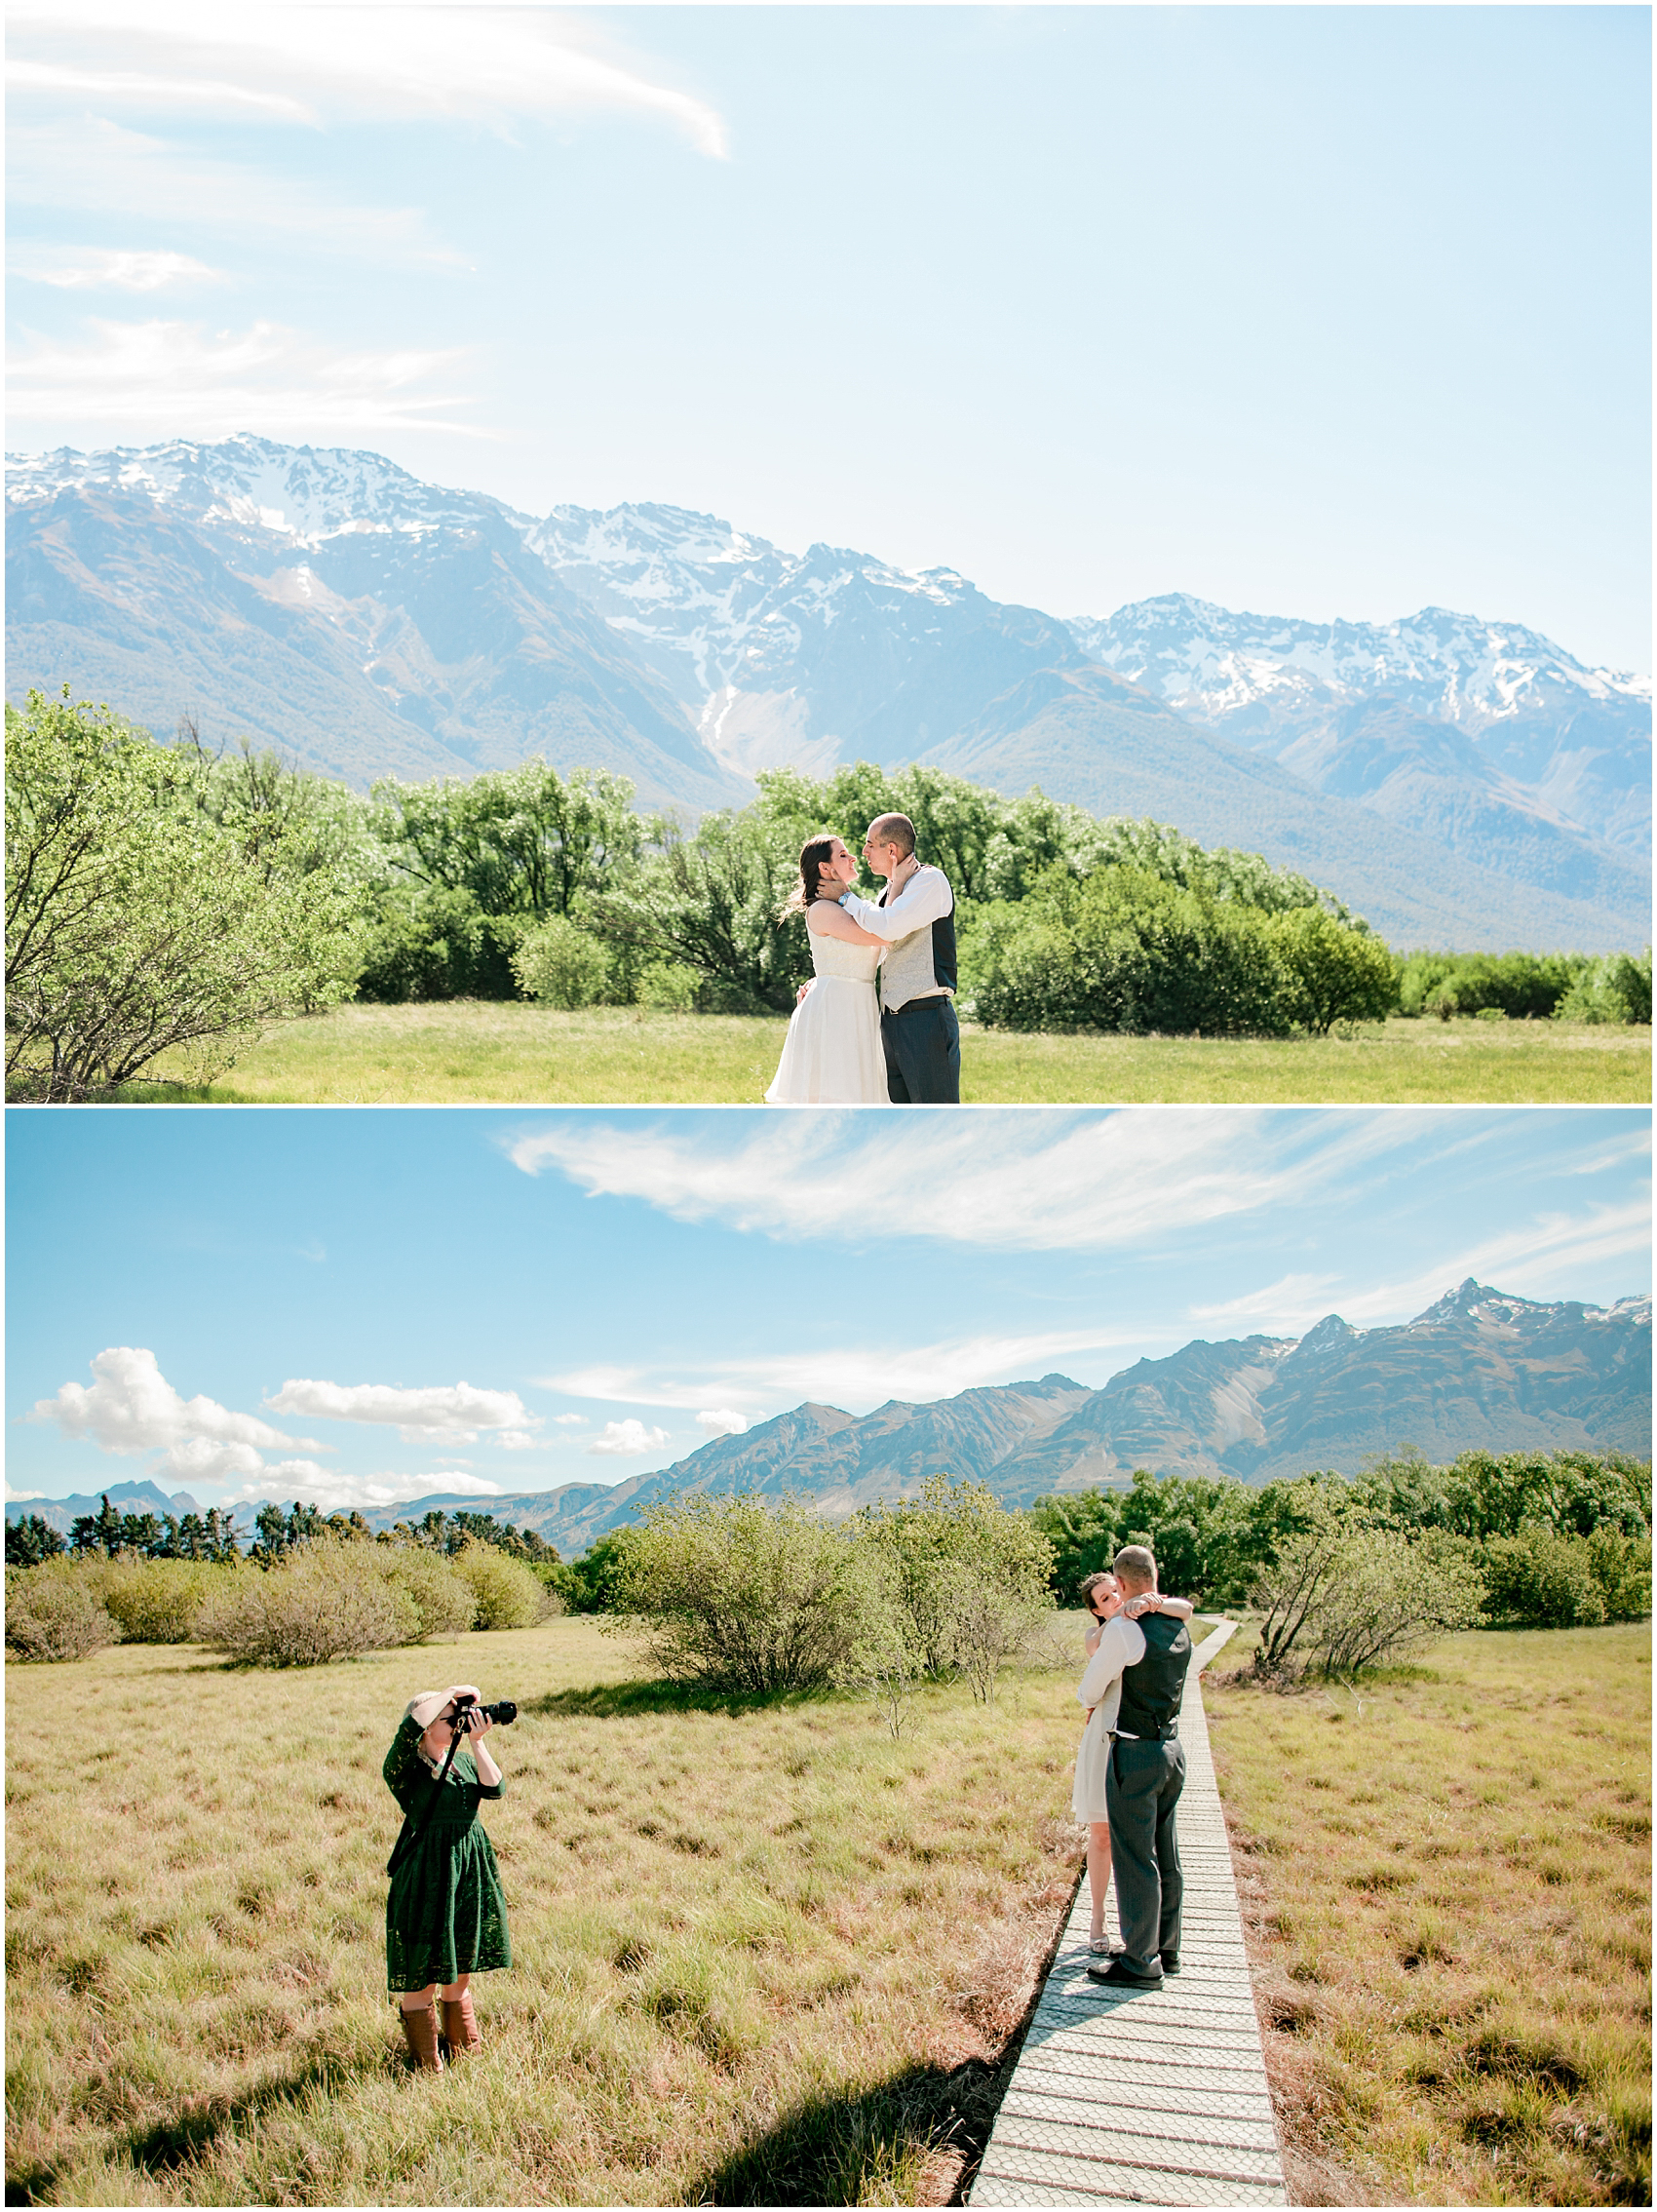 Queenstown New Zealand Wedding Photographer Bruna Fabricio Smetona Photo-0047.jpg